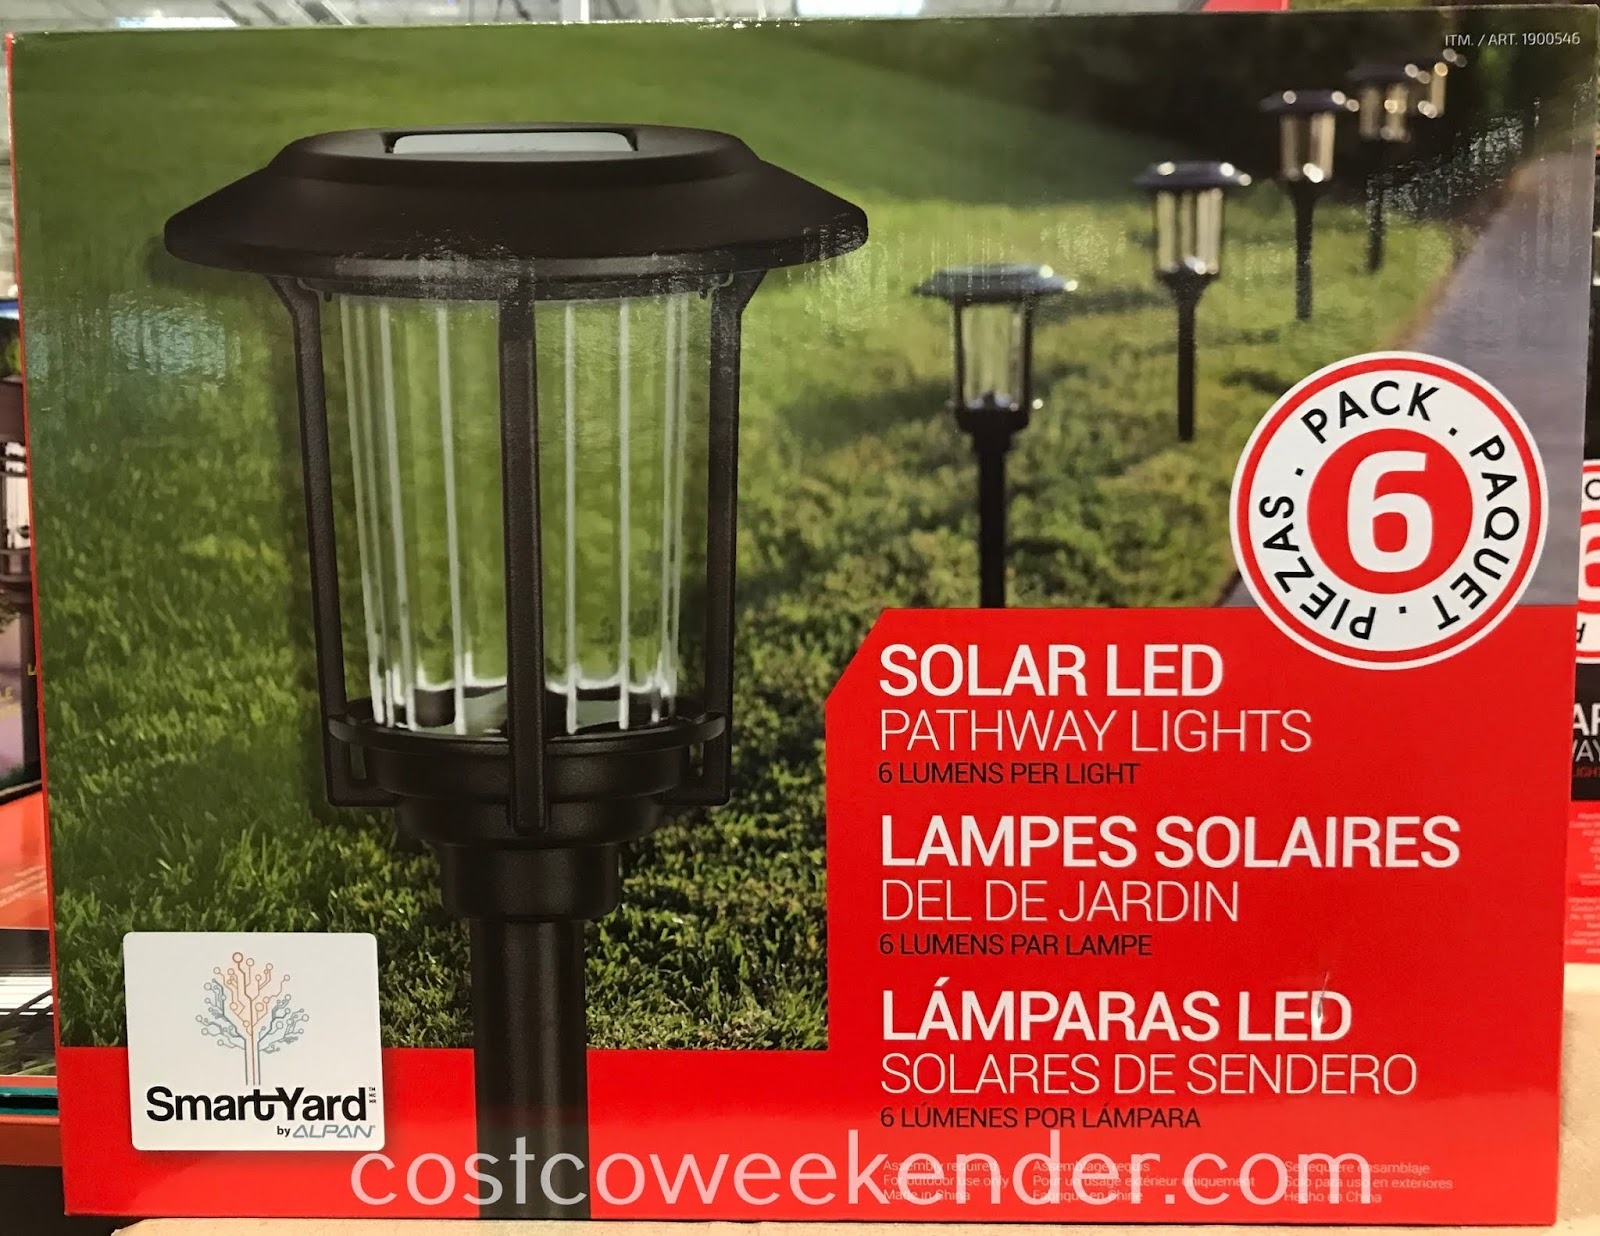 Illuminate the exterior of your house with SmartYard Solar LED Pathway Lights